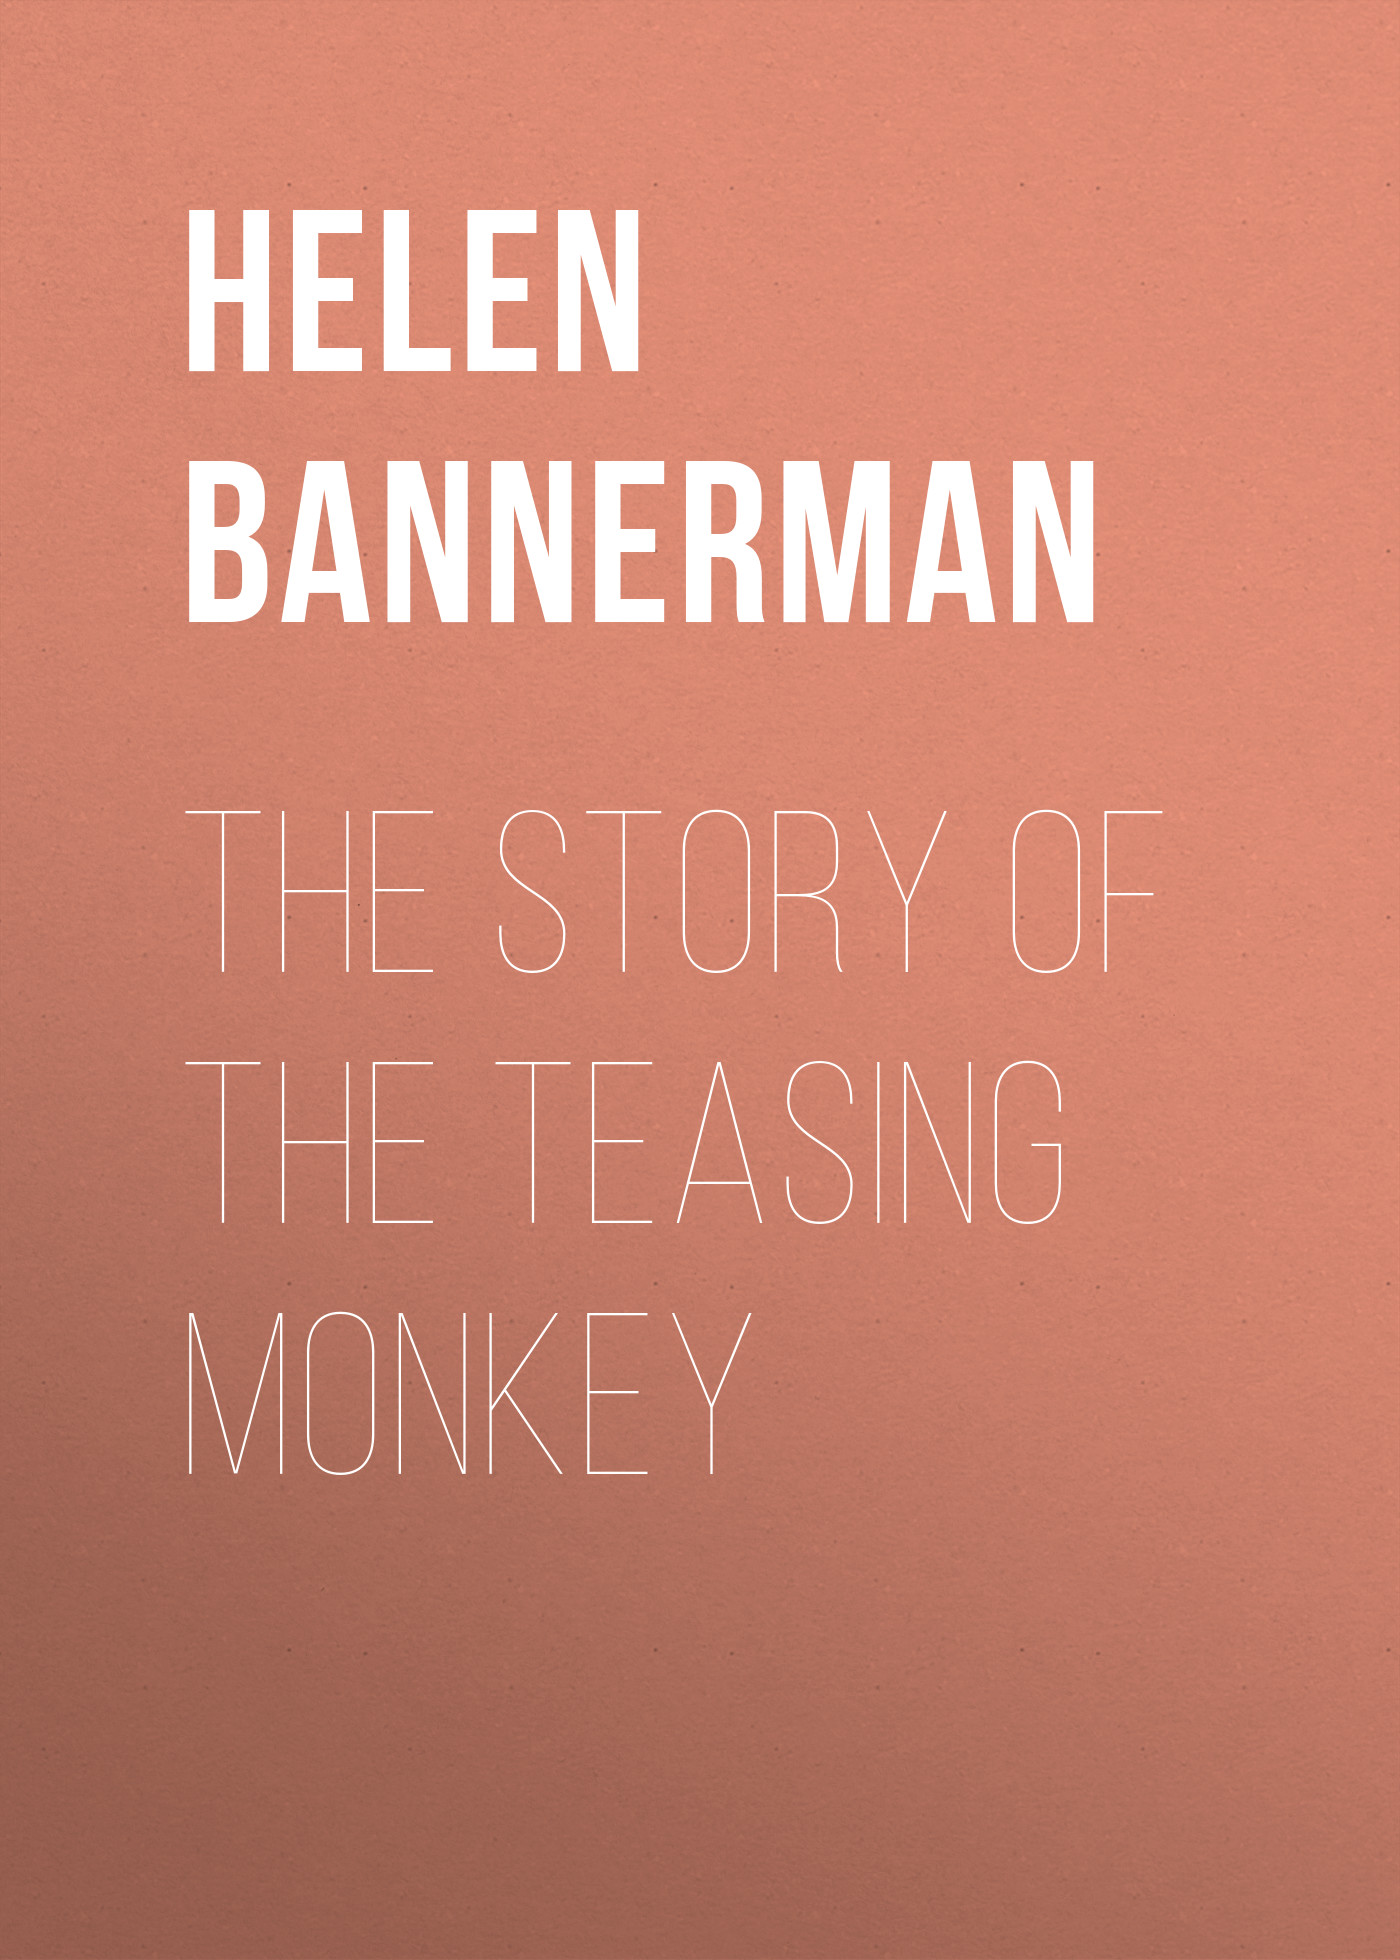 Bannerman Helen The Story of the Teasing Monkey the hole story